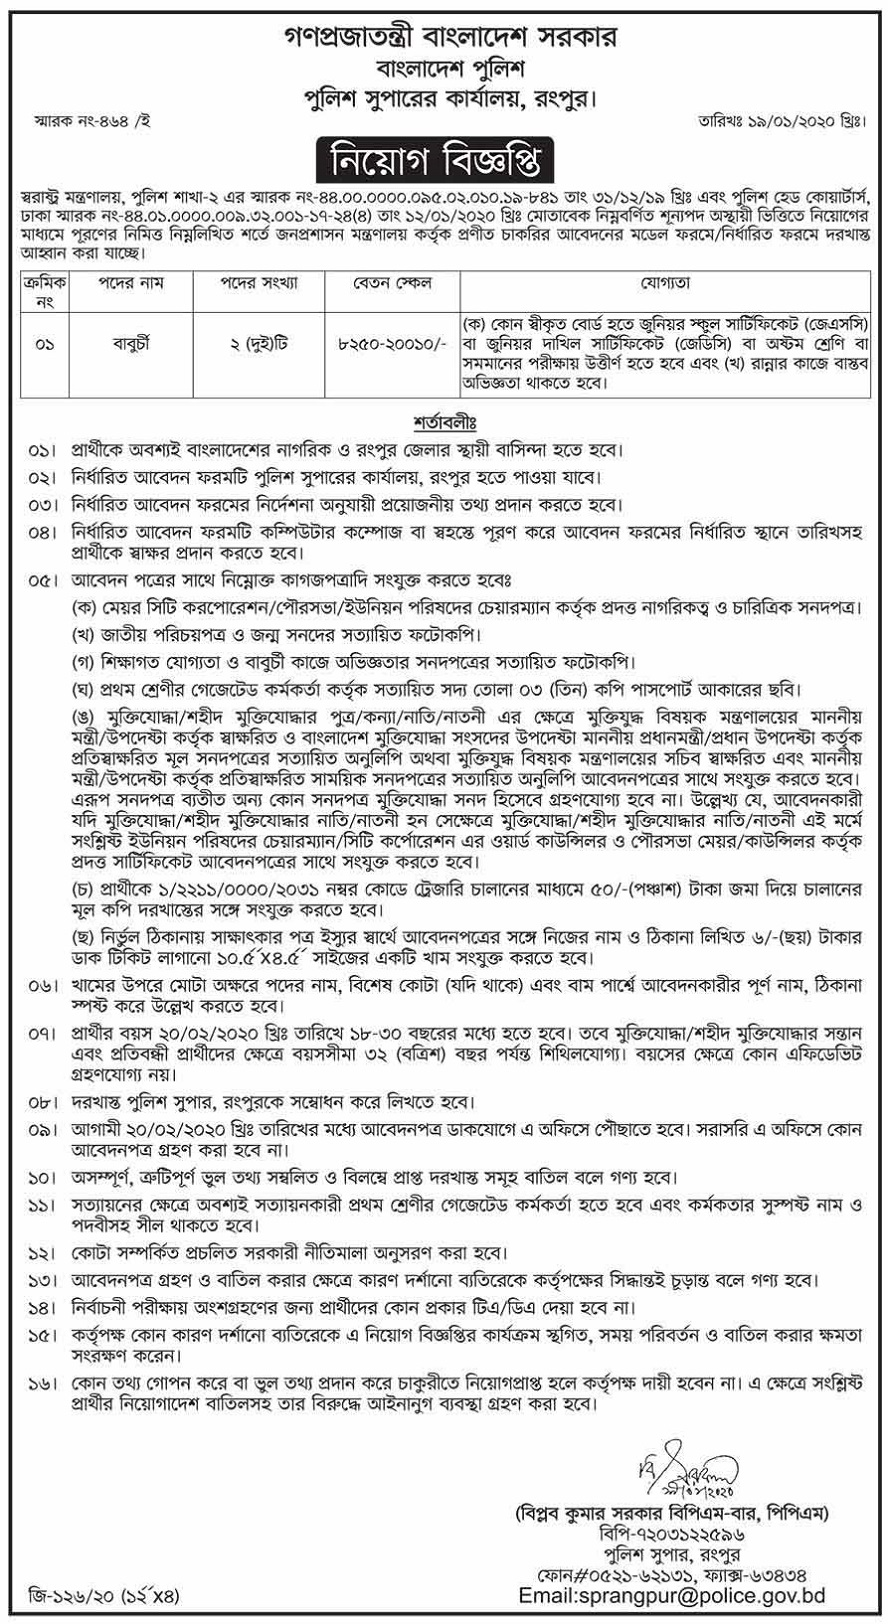 Rangpur Police Super Office Job Circular 2020